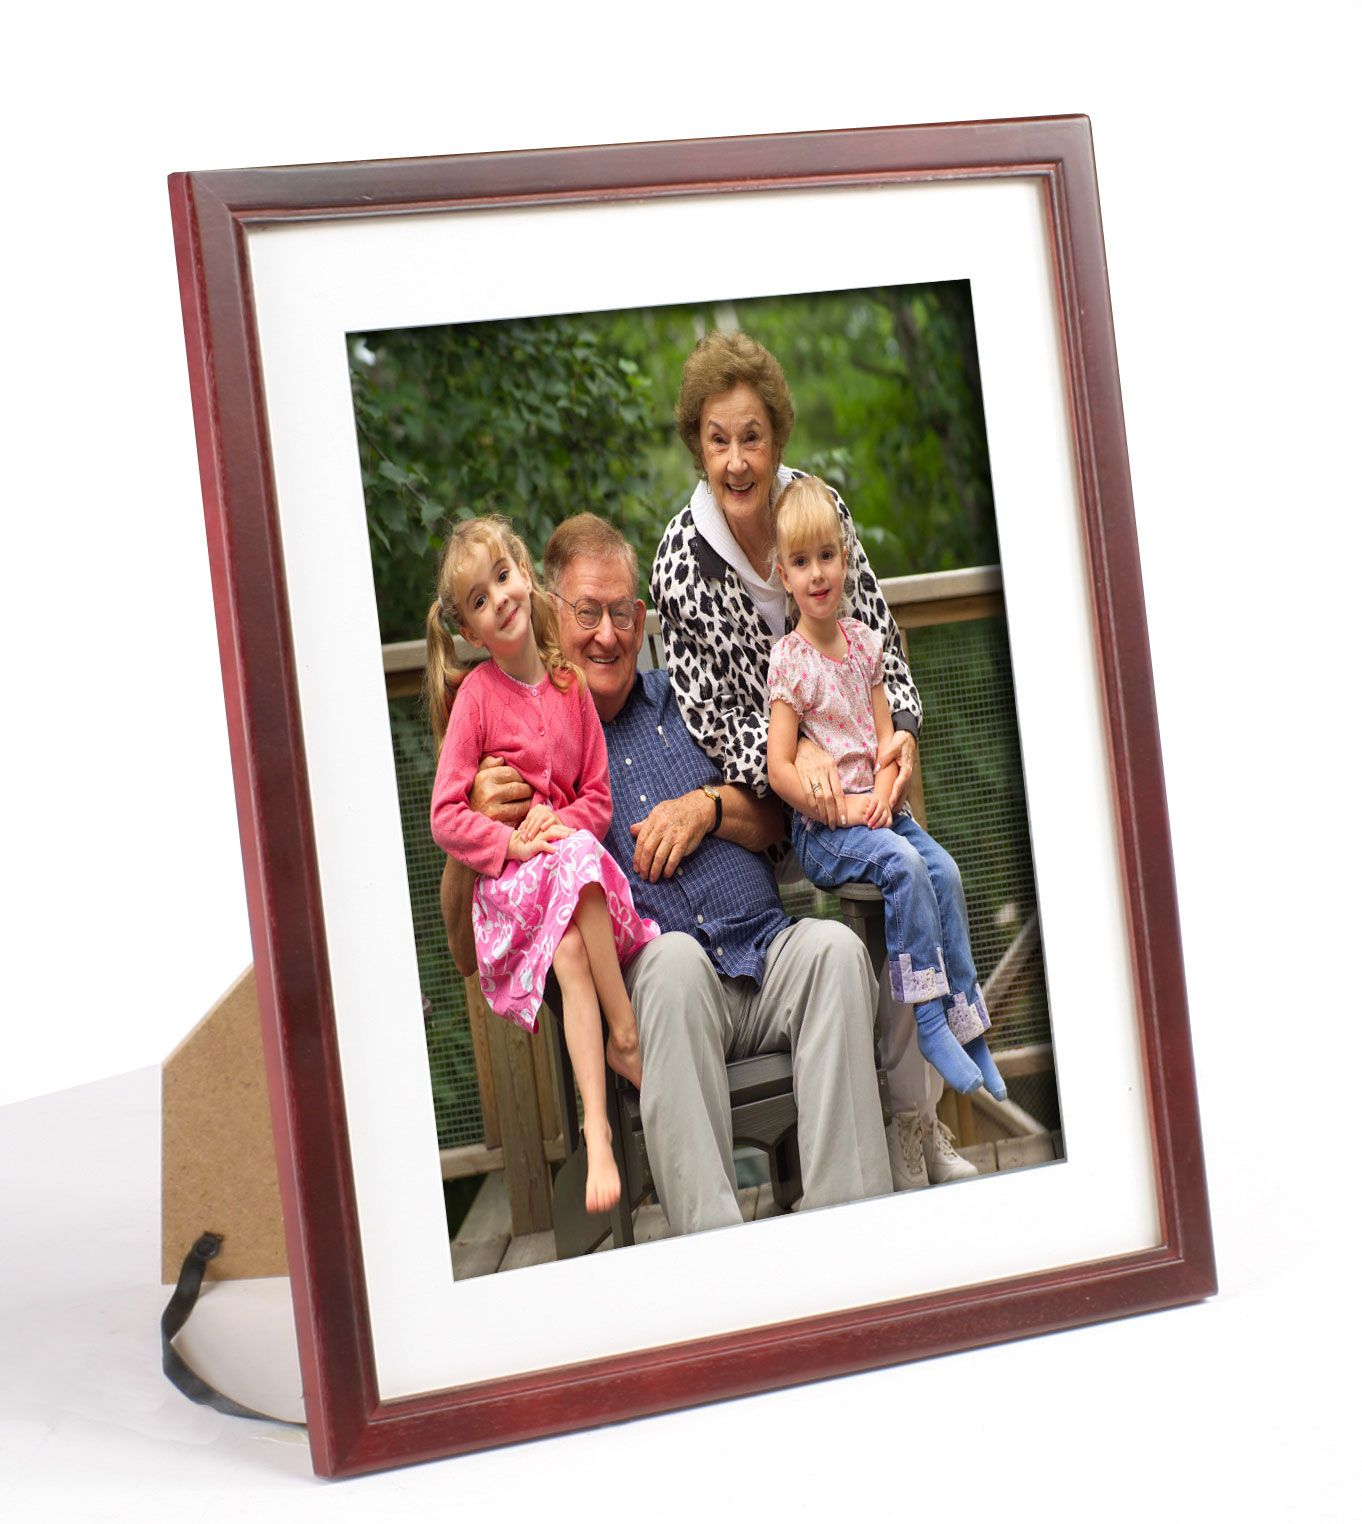 10 X 12 Wood Picture Frame For Tabletop Or Wall Matted To 8 X 10 Mahogany Wood Picture Frames Picture On Wood Picture Frame Mat